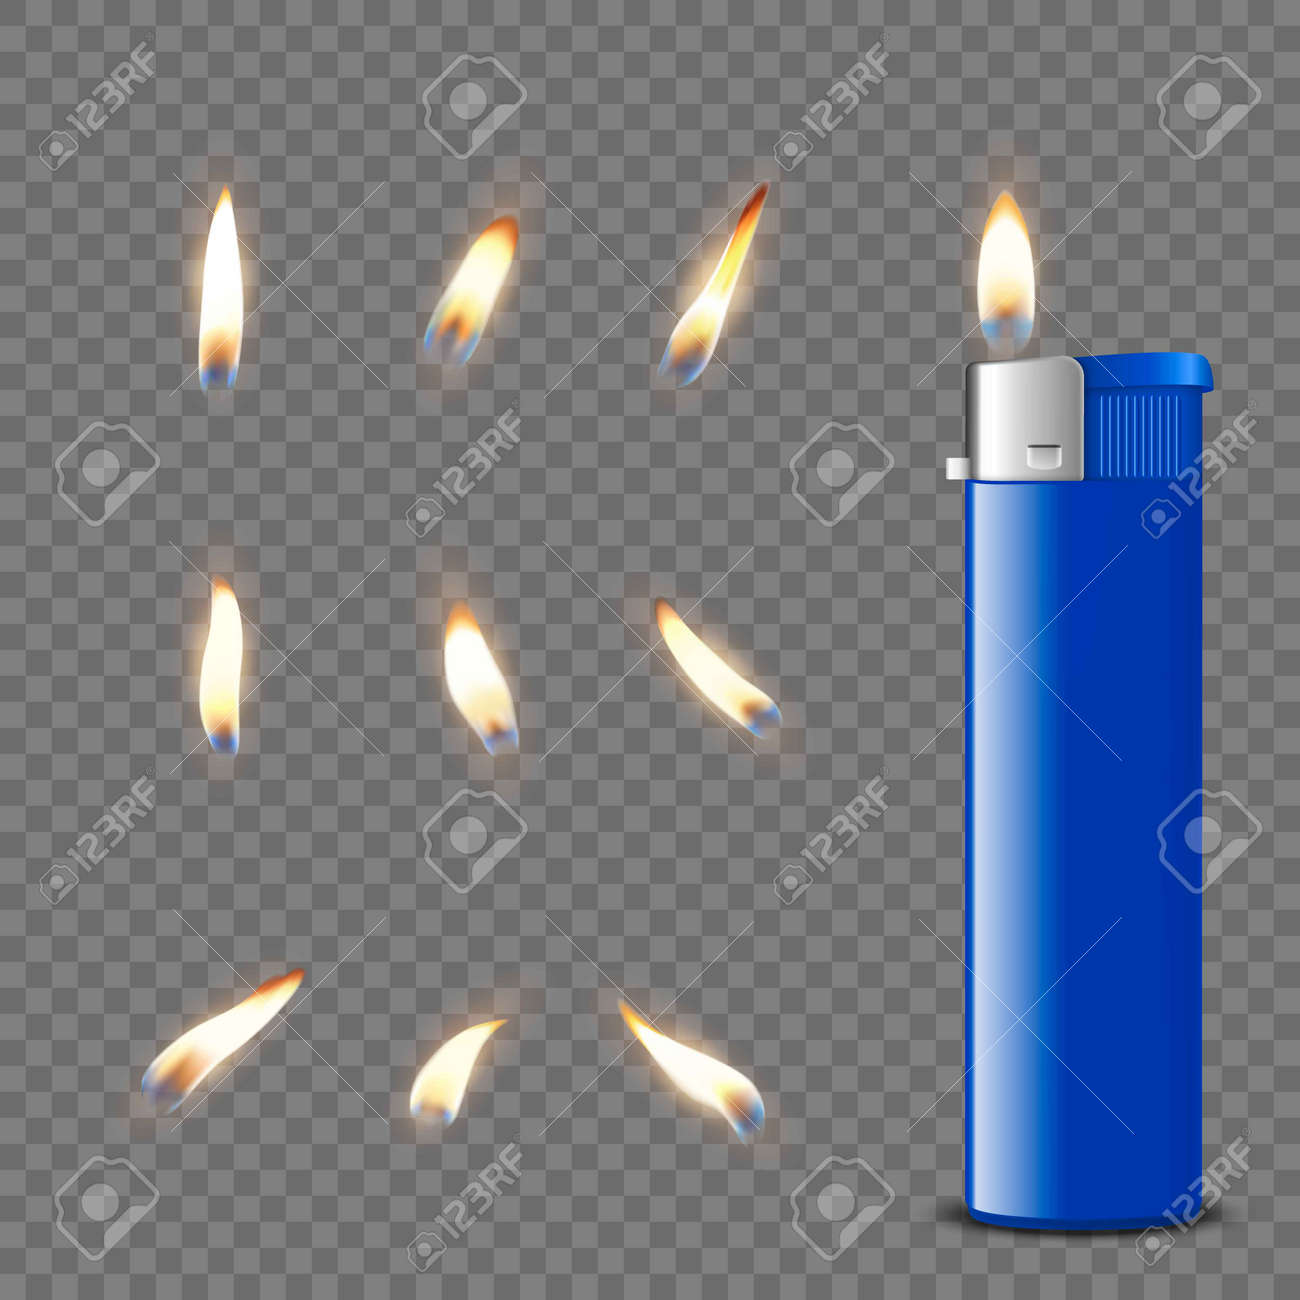 Vector 3d Realistic Blank Blue Gasoline Lighter and Burning Flame Icon Set Closeup Isolated. Fire from a Lighter. Design Template of Lighter Flame. Front View - 173751207